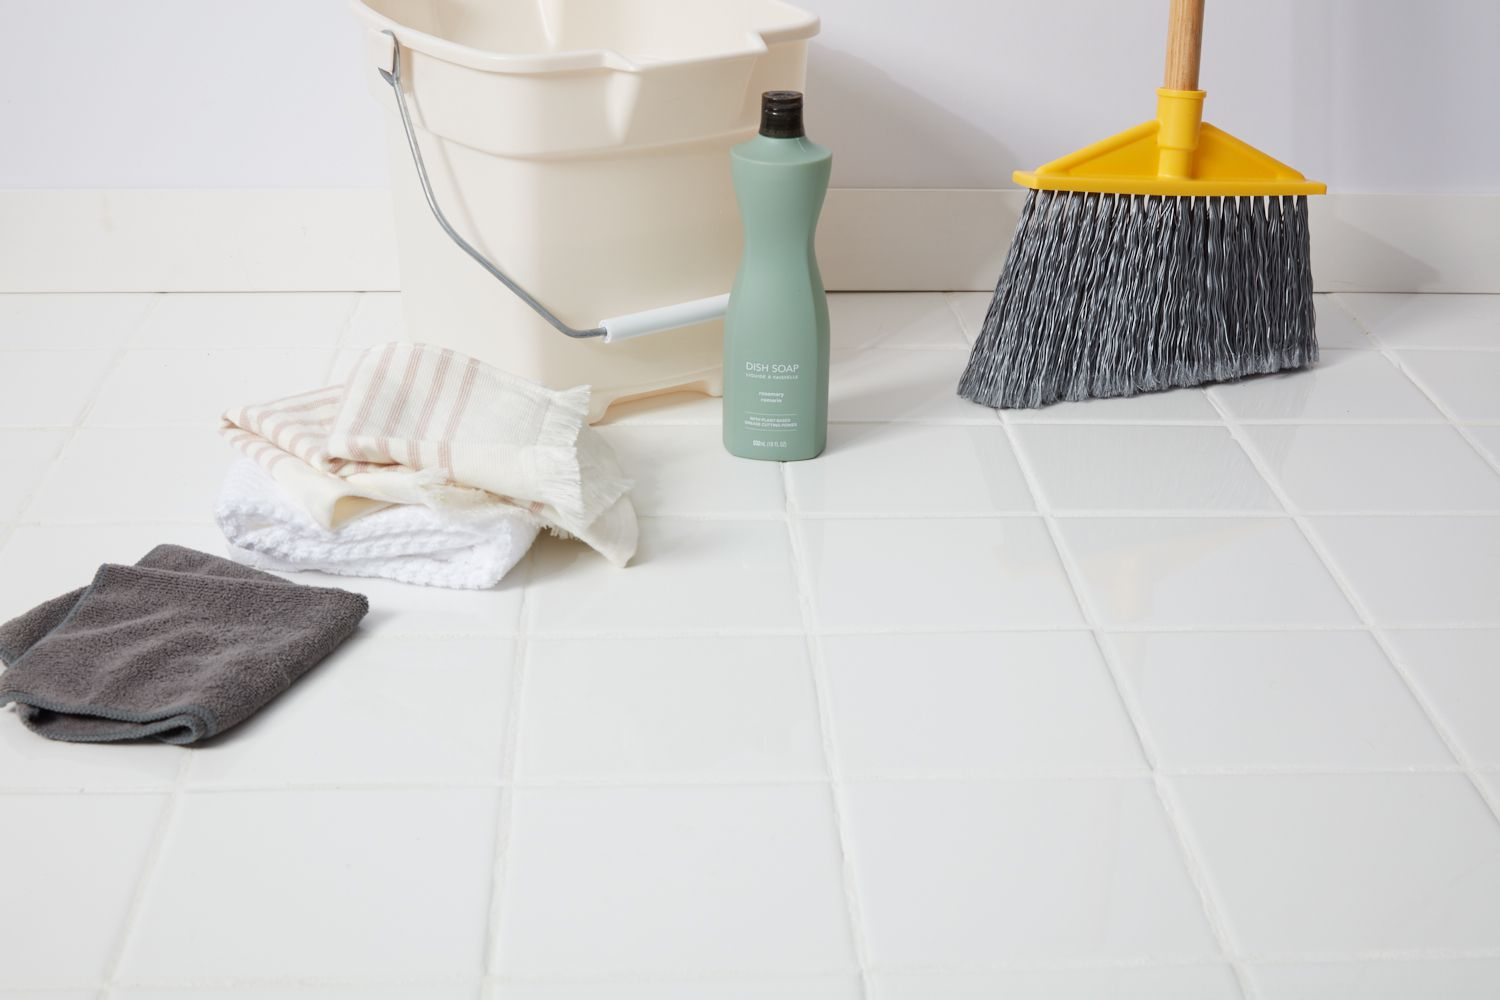 Ceramic tile cleaning supplies